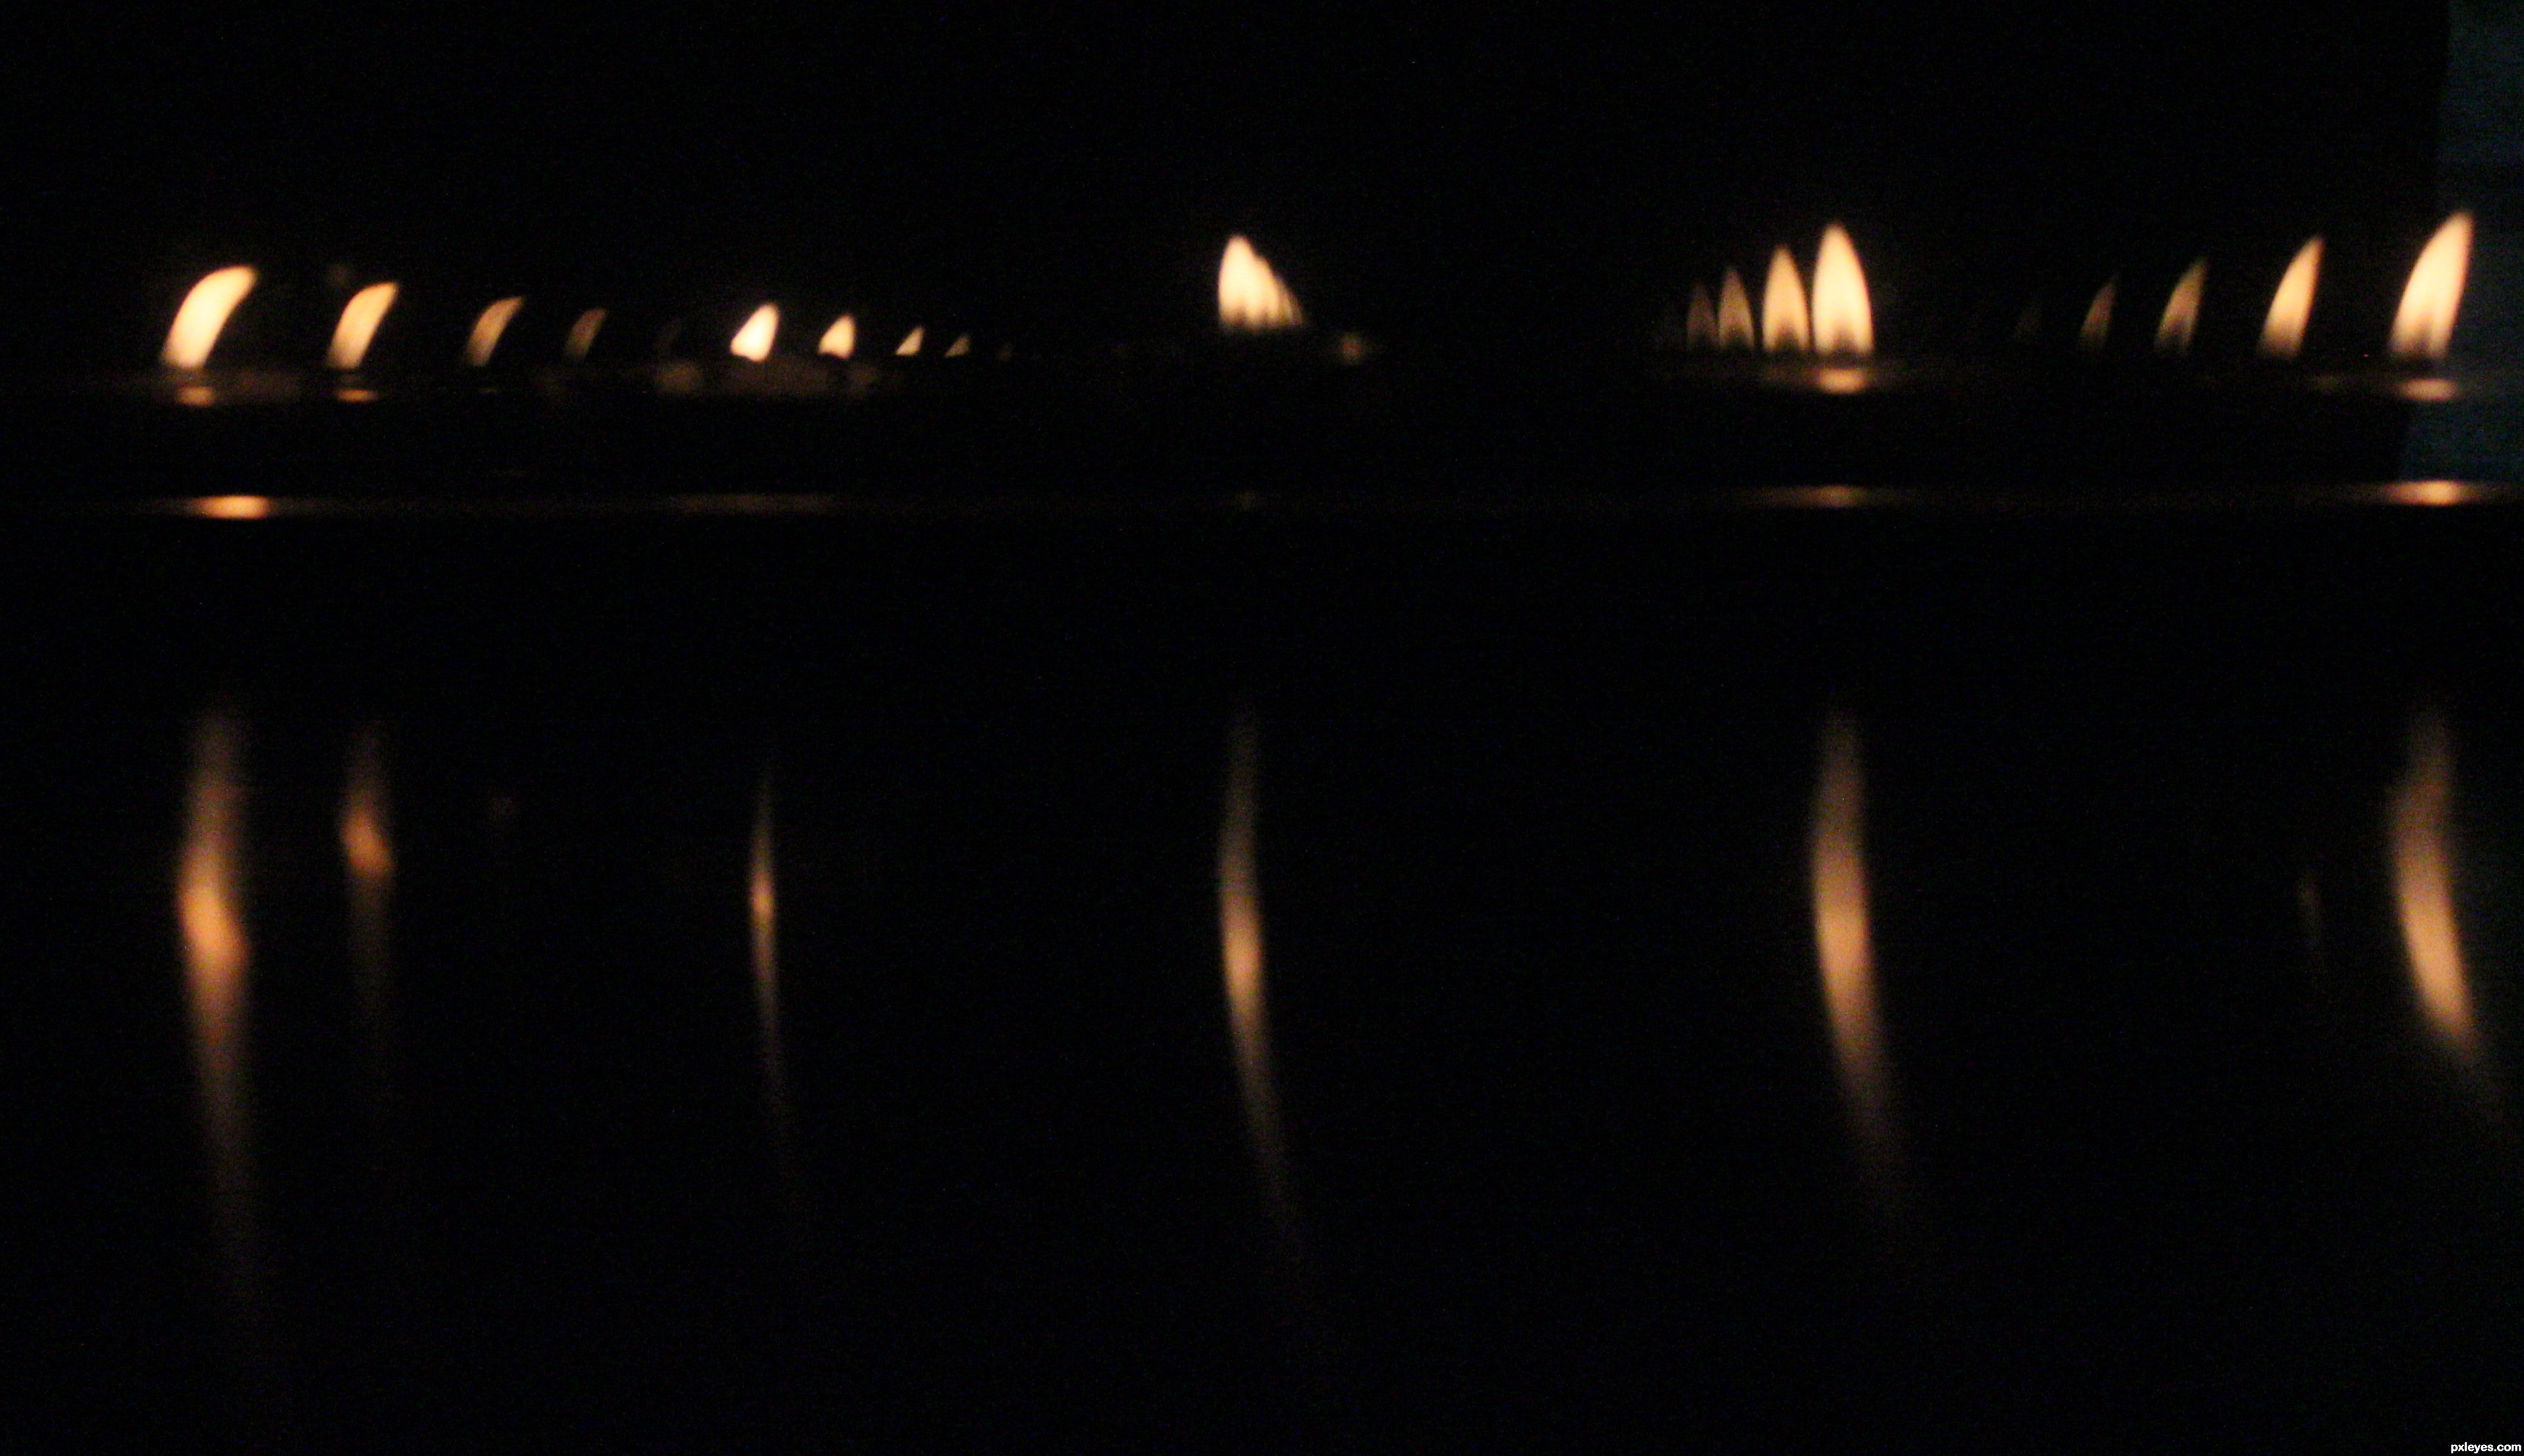 Beauty of lit candles picture, by teecee for: candles photography ...